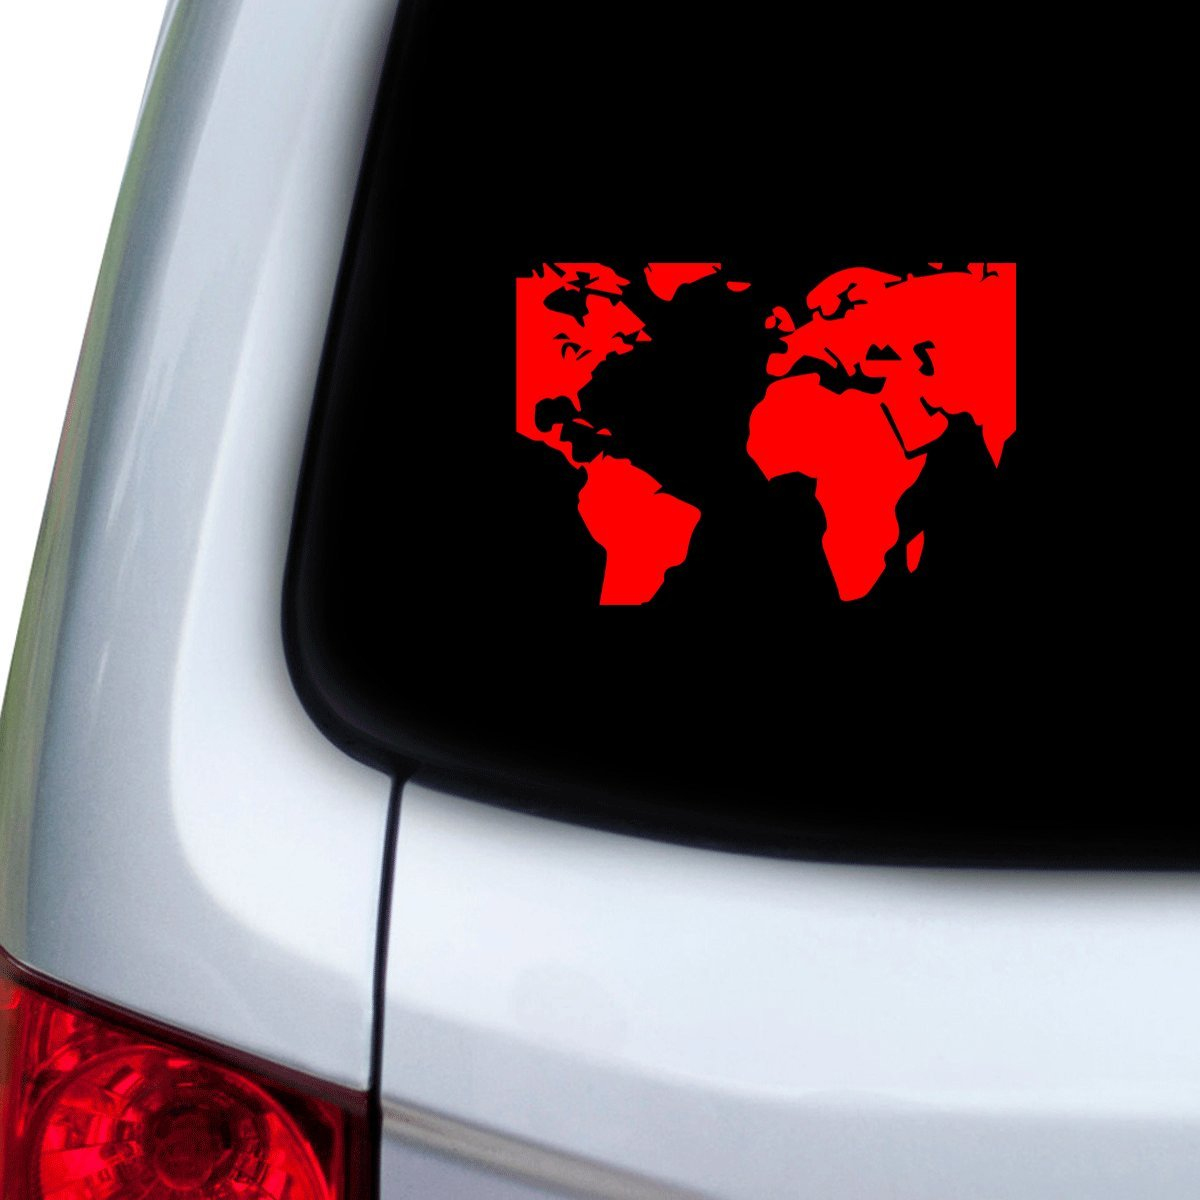 Red Doors StickAny Car and Auto Decal Series Cropped World Map Sticker for Windows Hoods